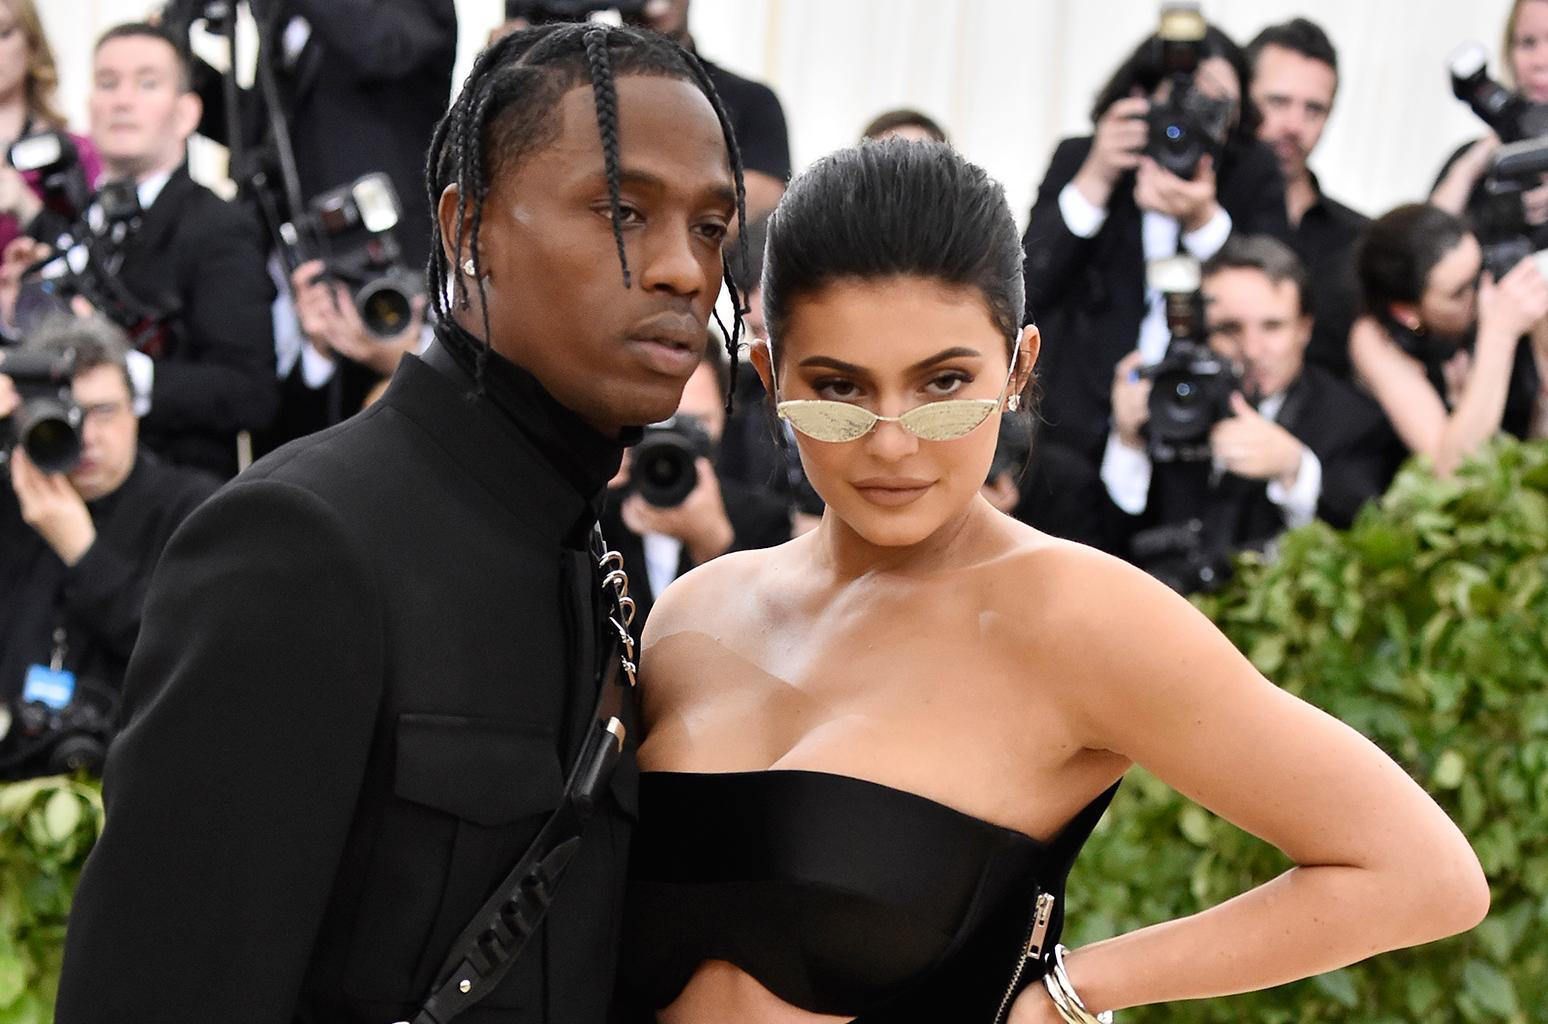 KUWK: Kylie Jenner Reveals What She Wants Her Second Baby To Be After Asking Travis Scott To Have Another One!